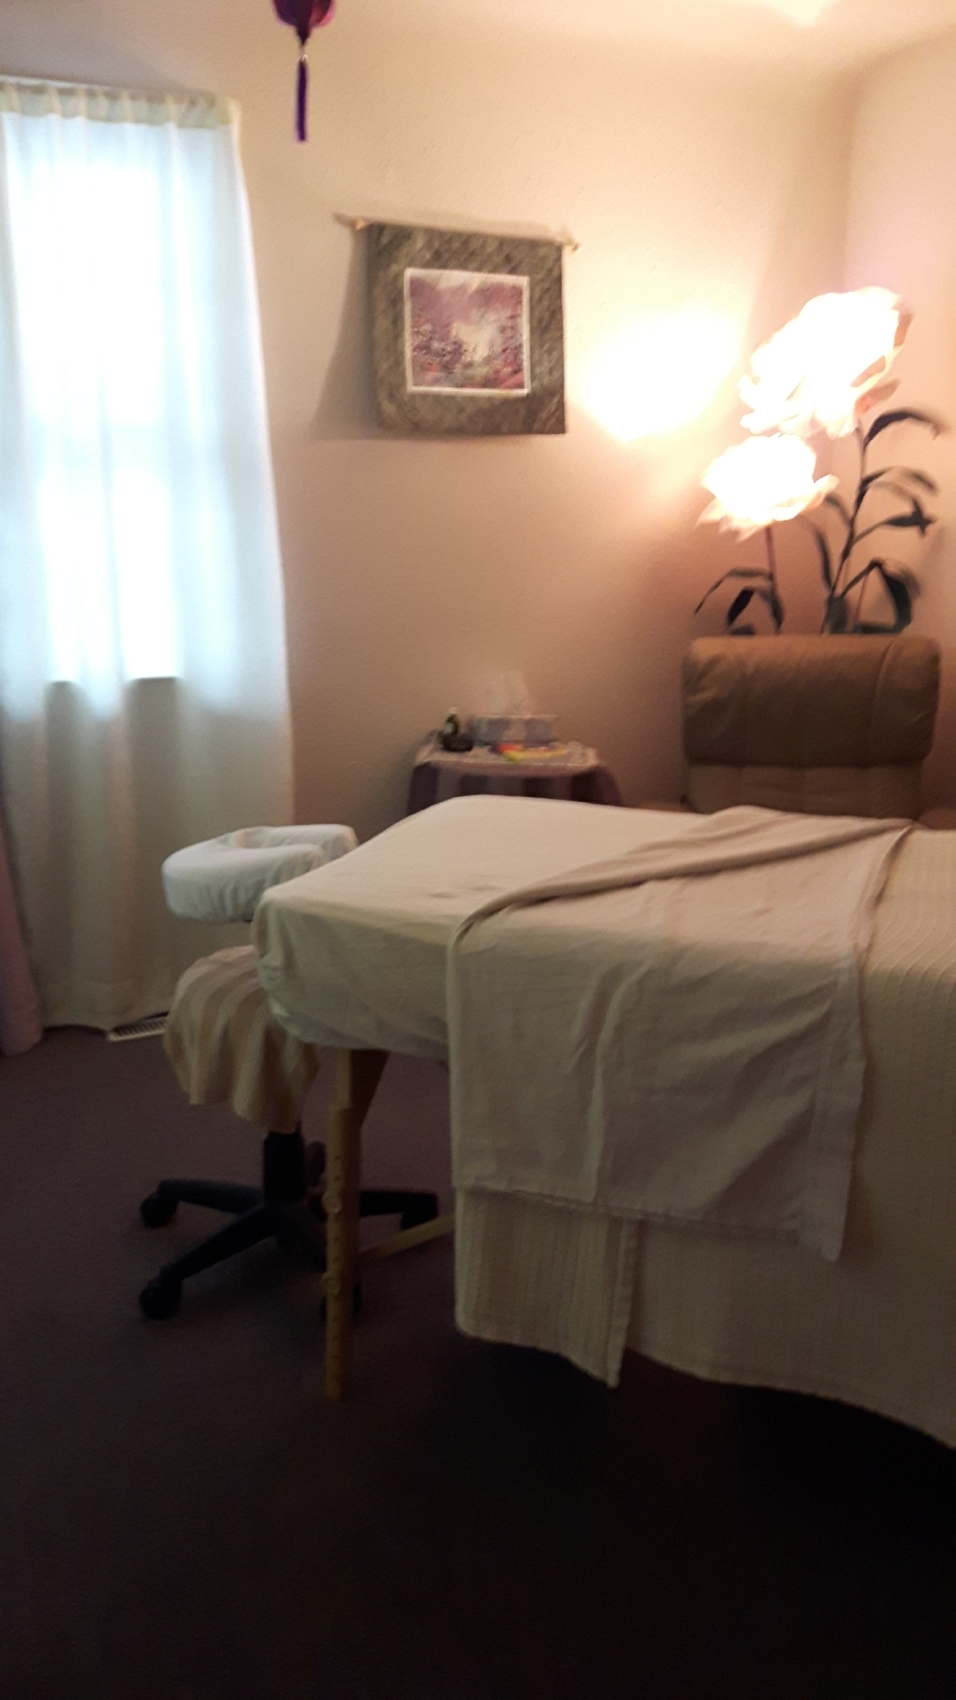 Massage and Wellness - Customized treatments for your well-being.